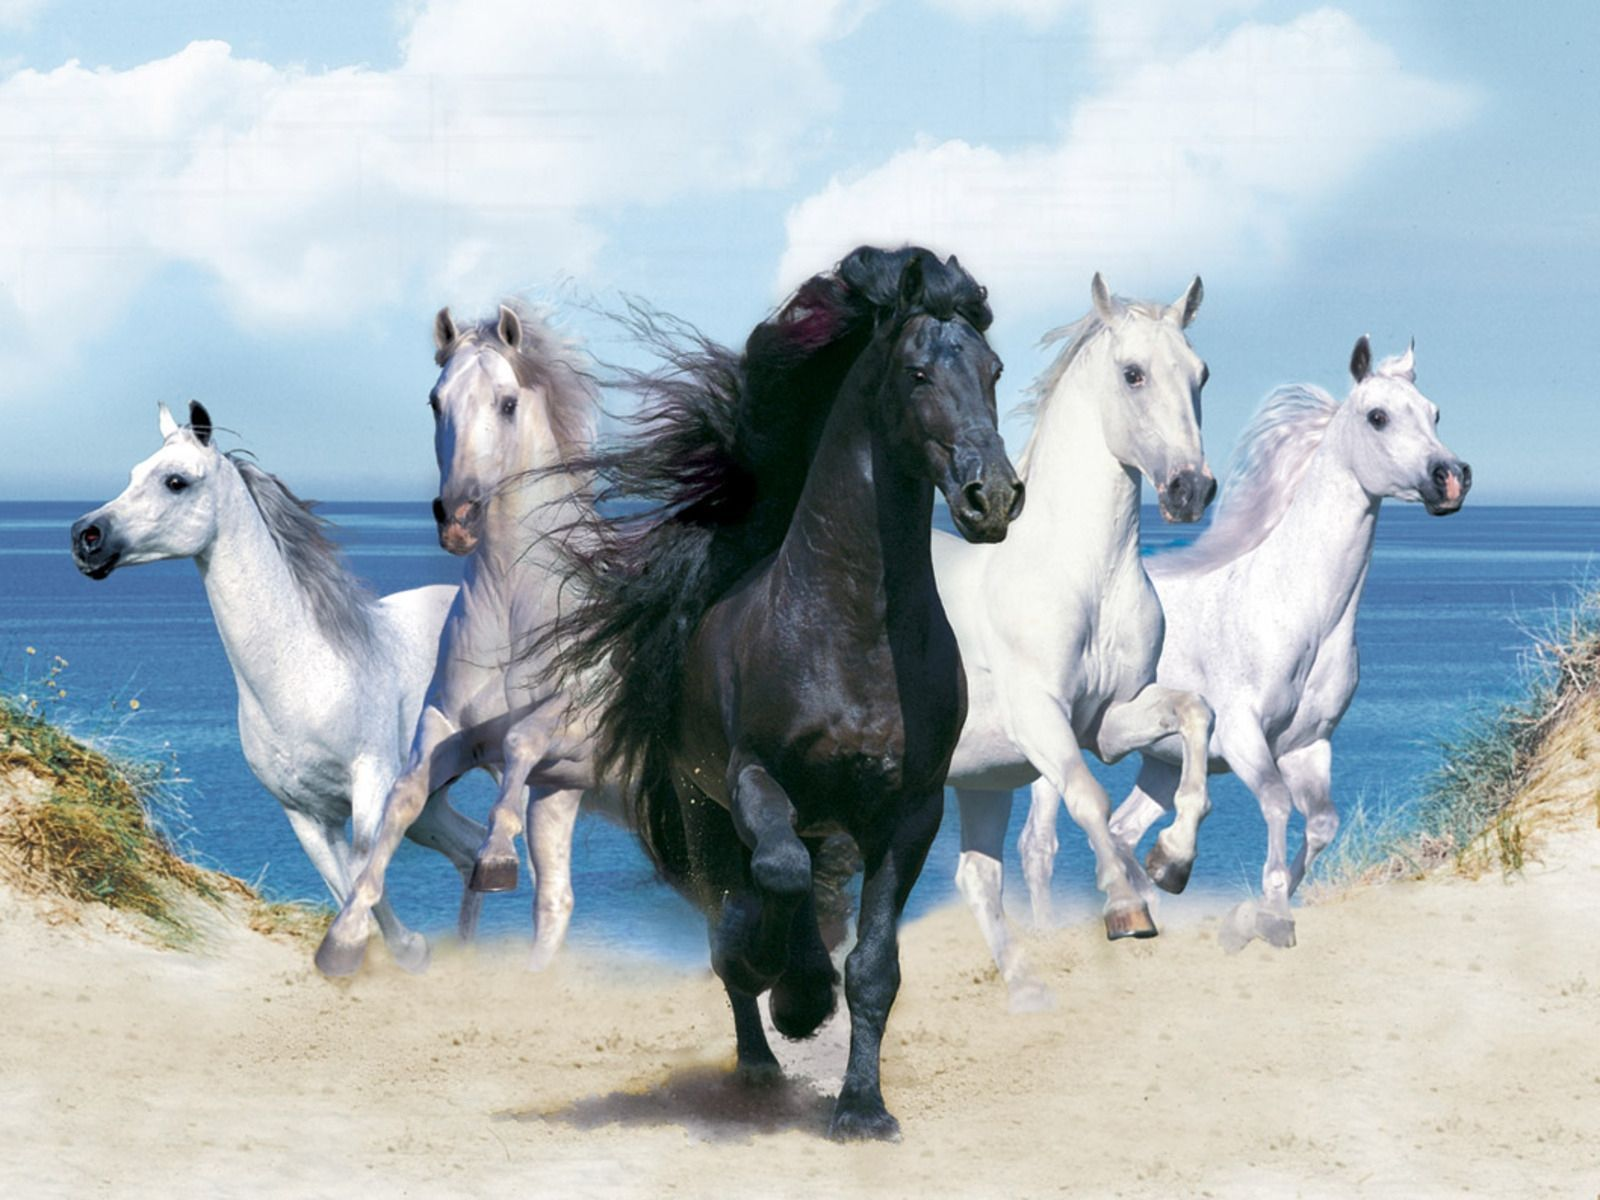 Horse wallpapers download free wallpapers pinterest horse horse horse wallpapers download voltagebd Choice Image